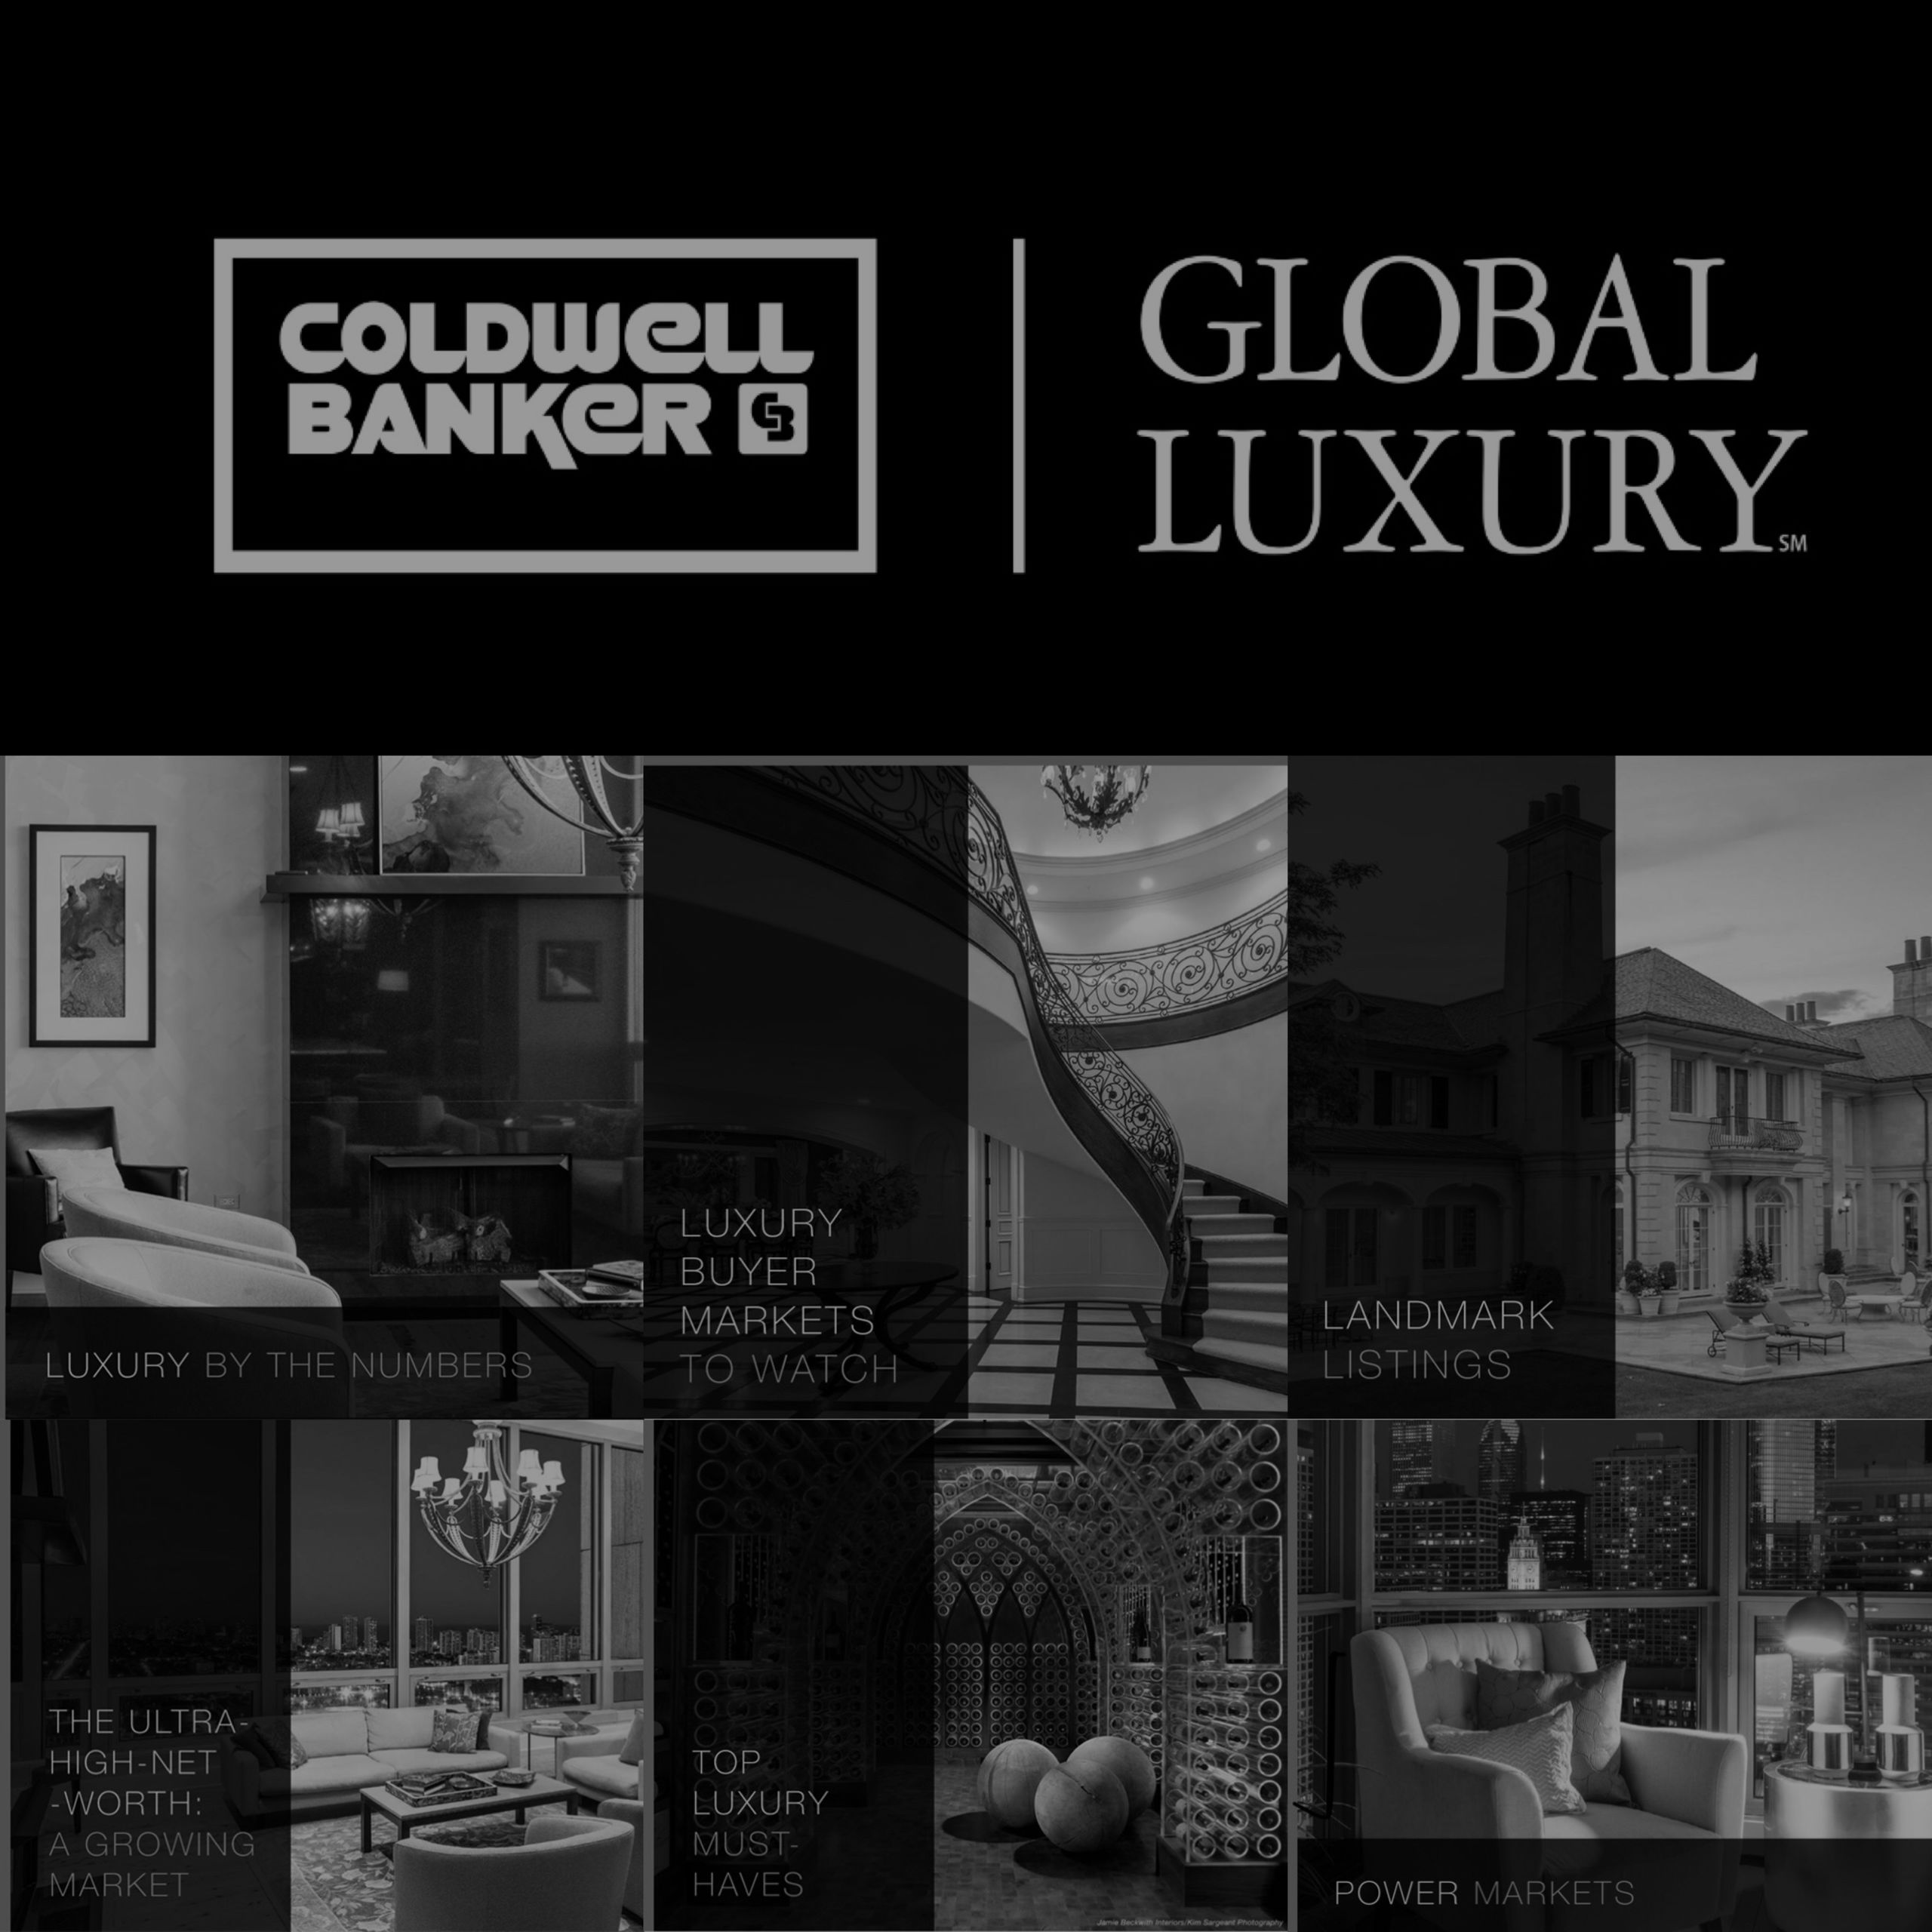 The 2018 Global Luxury Report